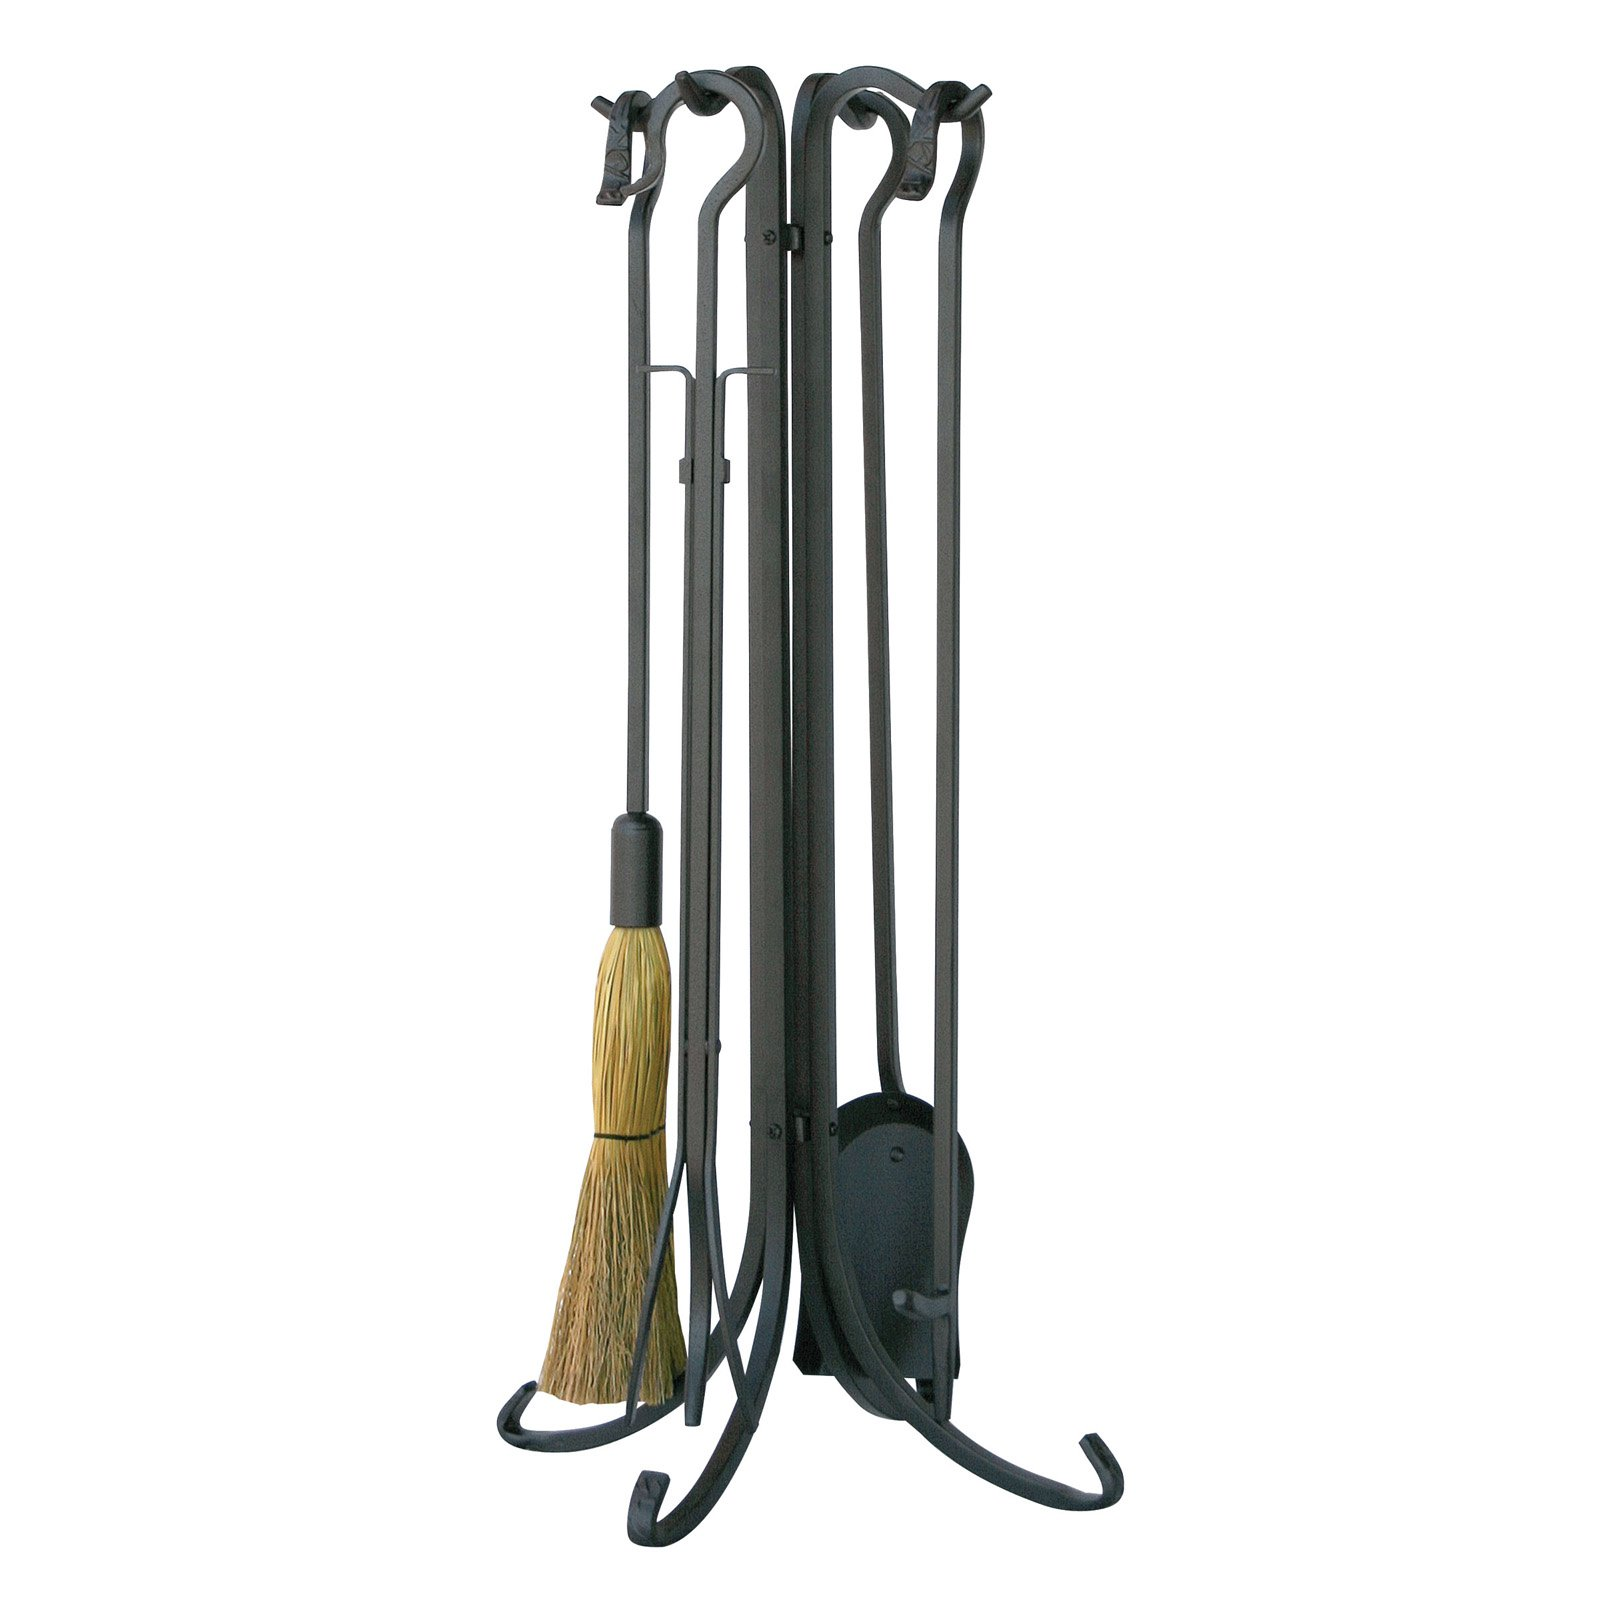 Uniflame 5-Piece Iron Fireplace Tool Set Crook Handles by UniFlame